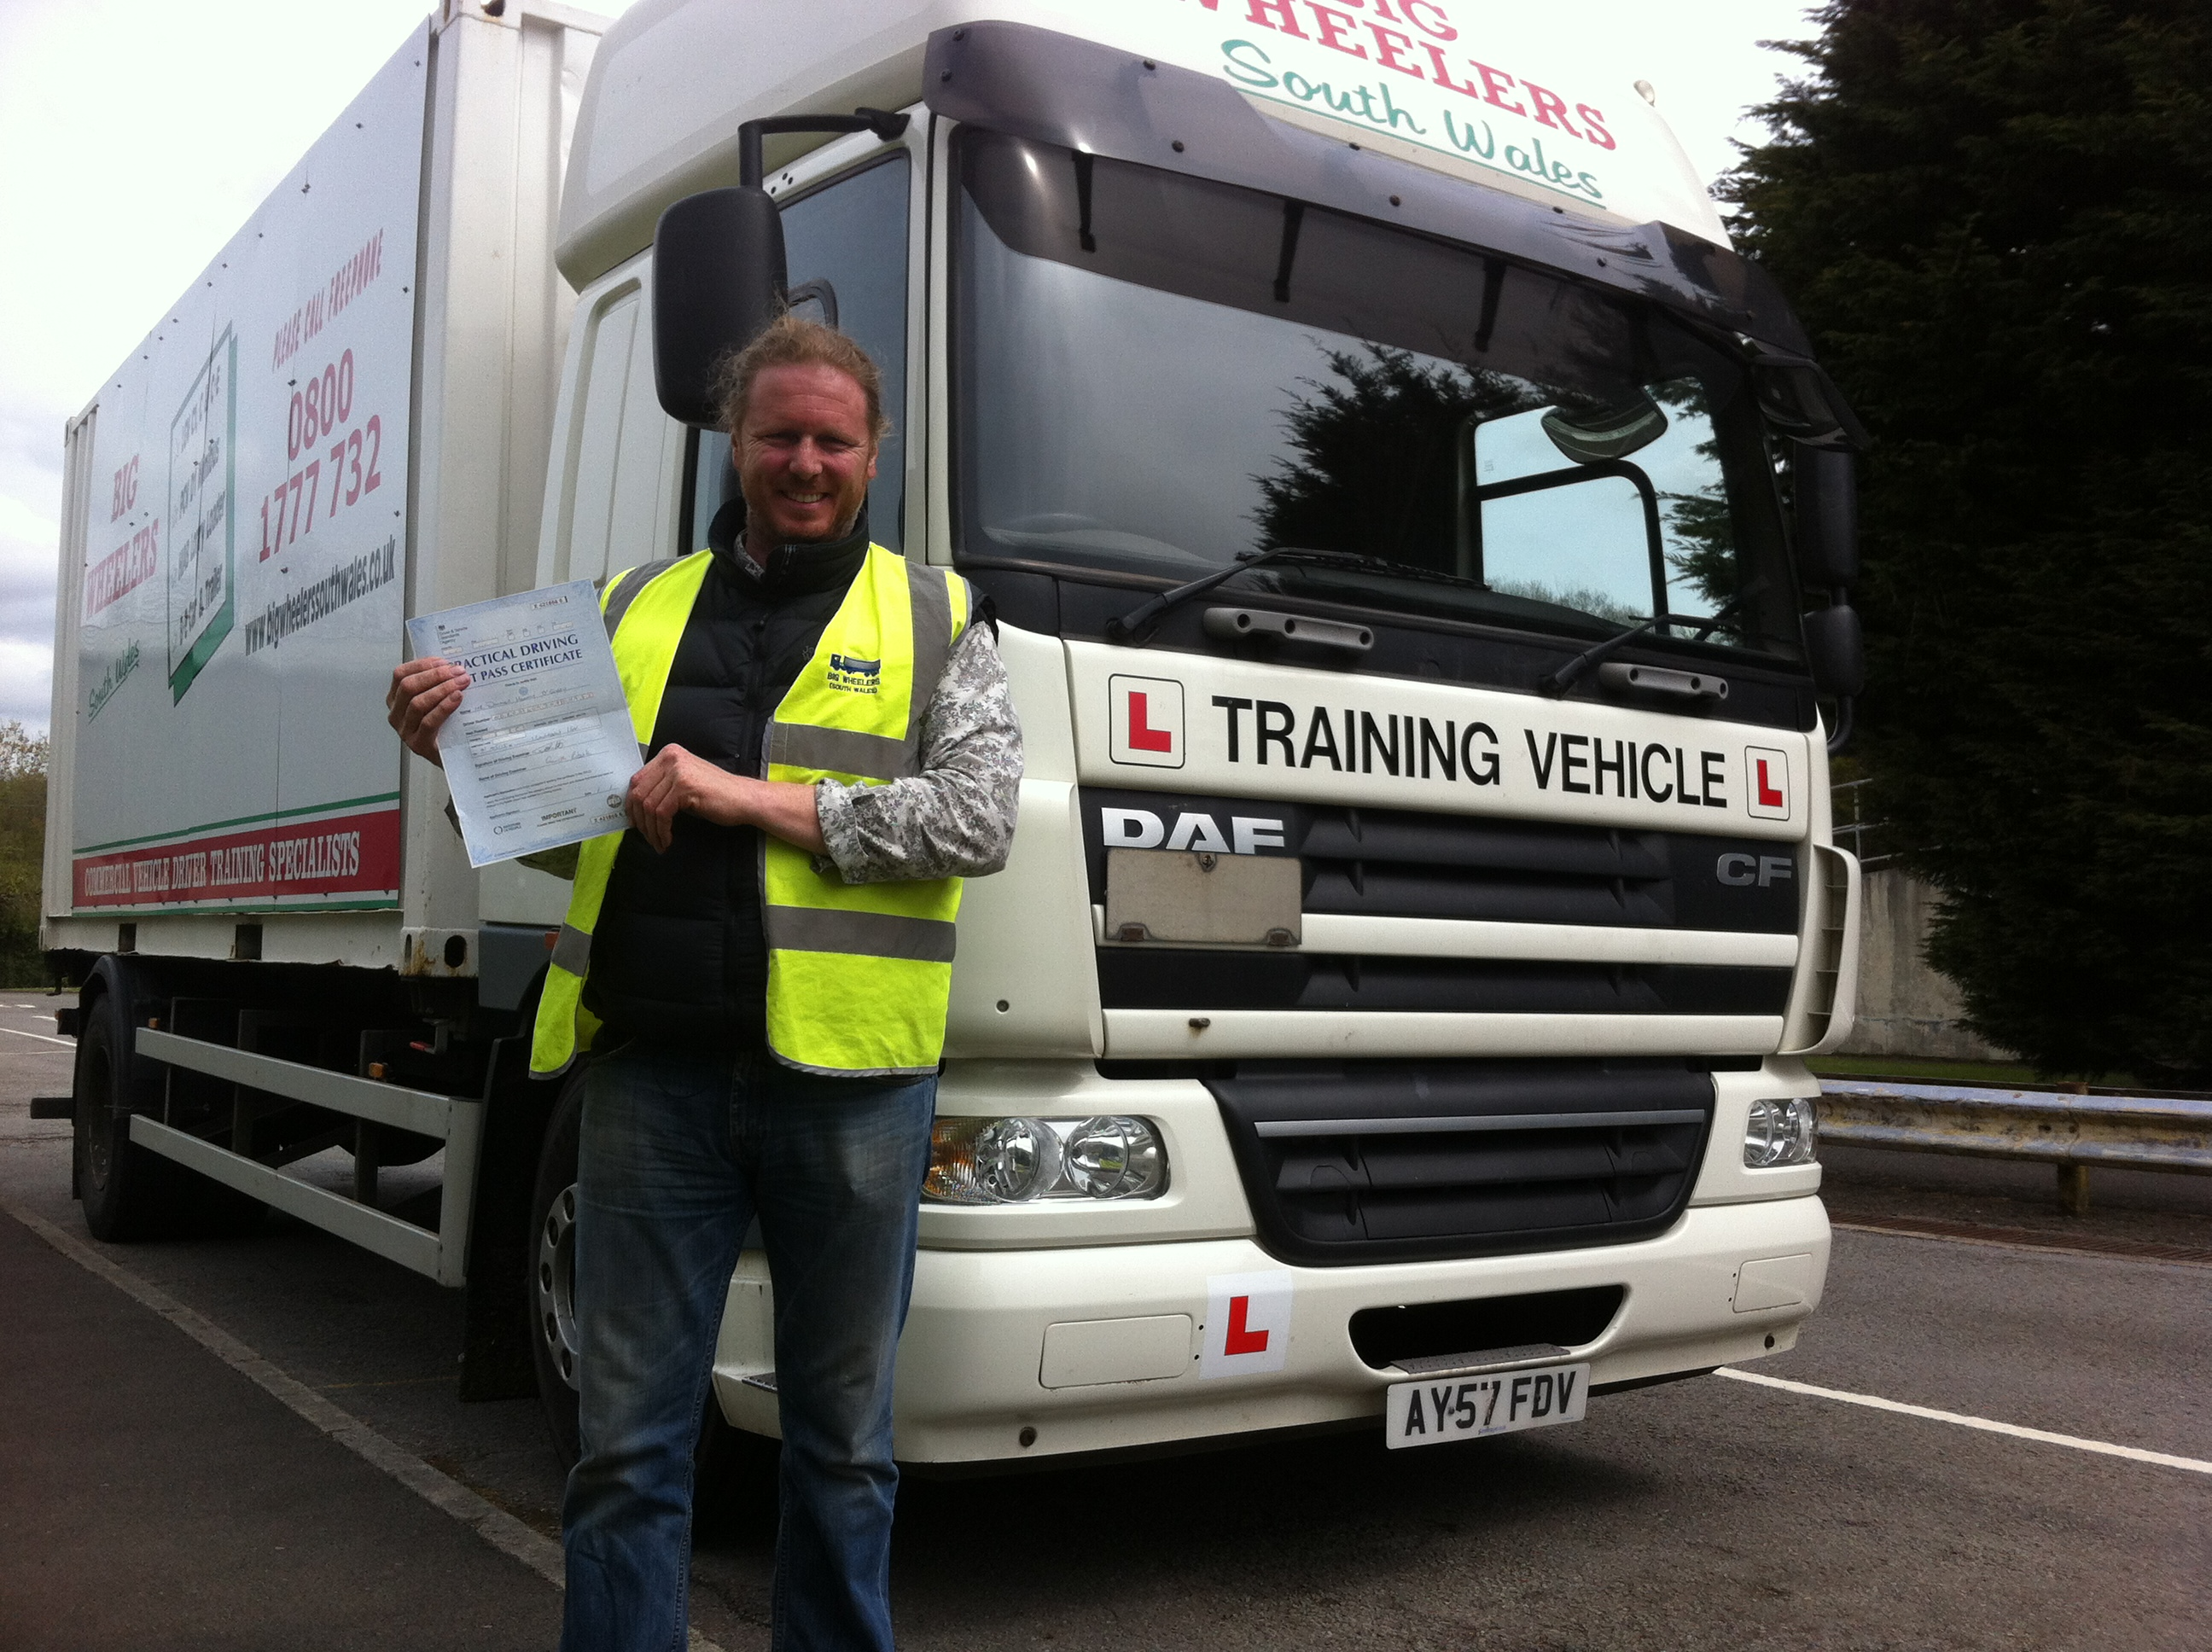 LGV C (HGV Class 2) Training Package (16 hours) for a Professional Rigid Truck Driver